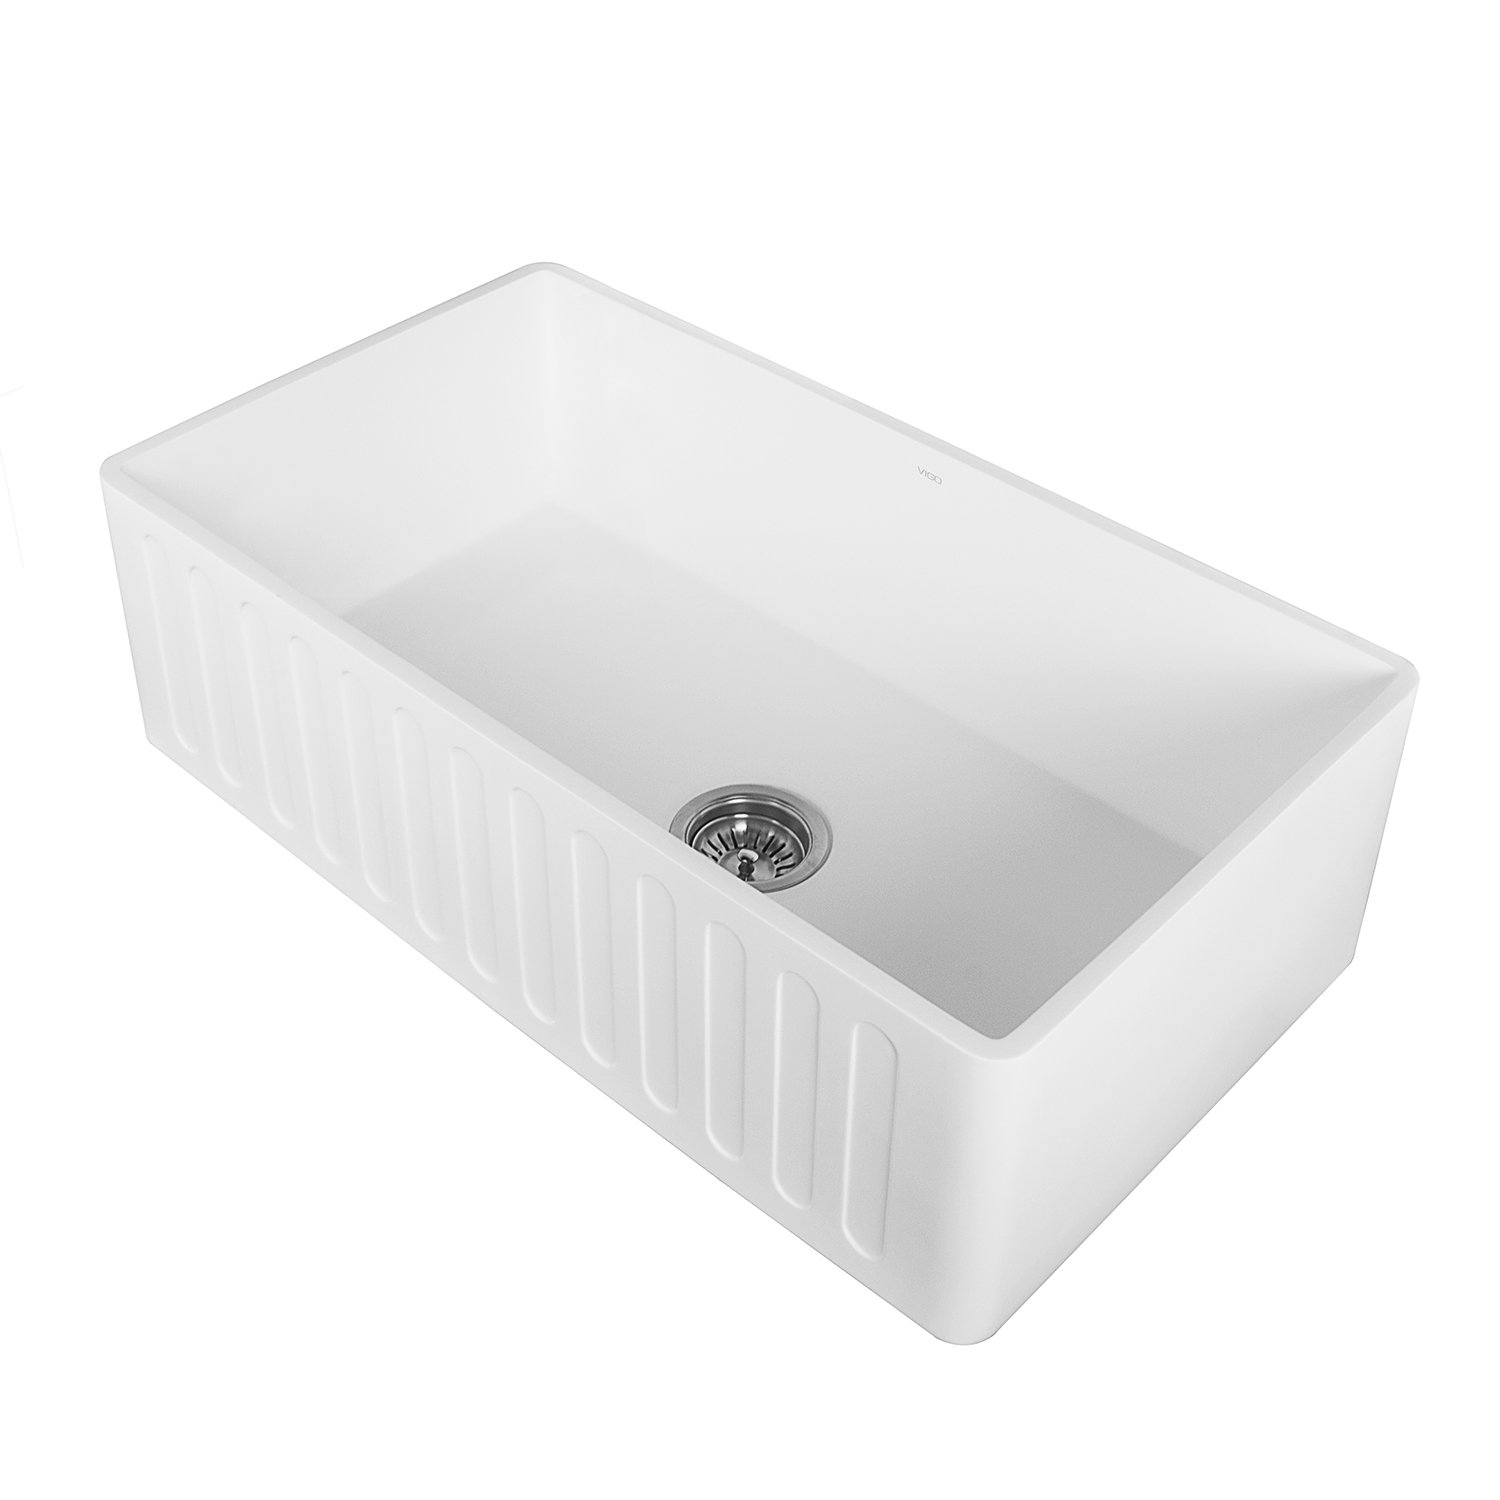 Acrylic Sink Reviews 2018 - Uncle Paul\'s Top 3 Choices